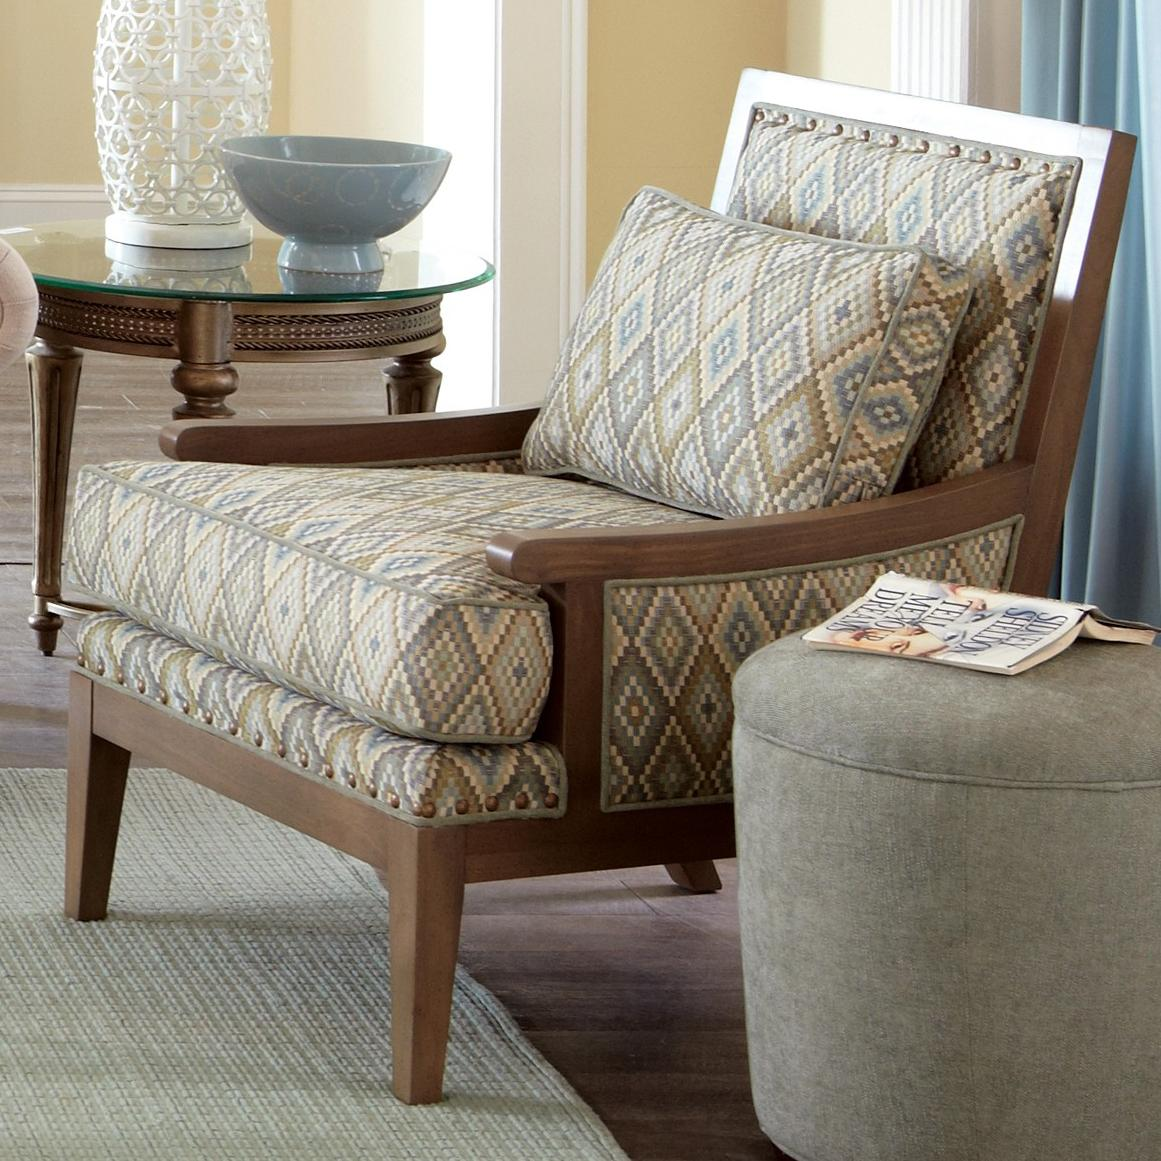 Craftmaster Accent Chairs 033310 Contemporary Exposed Wood